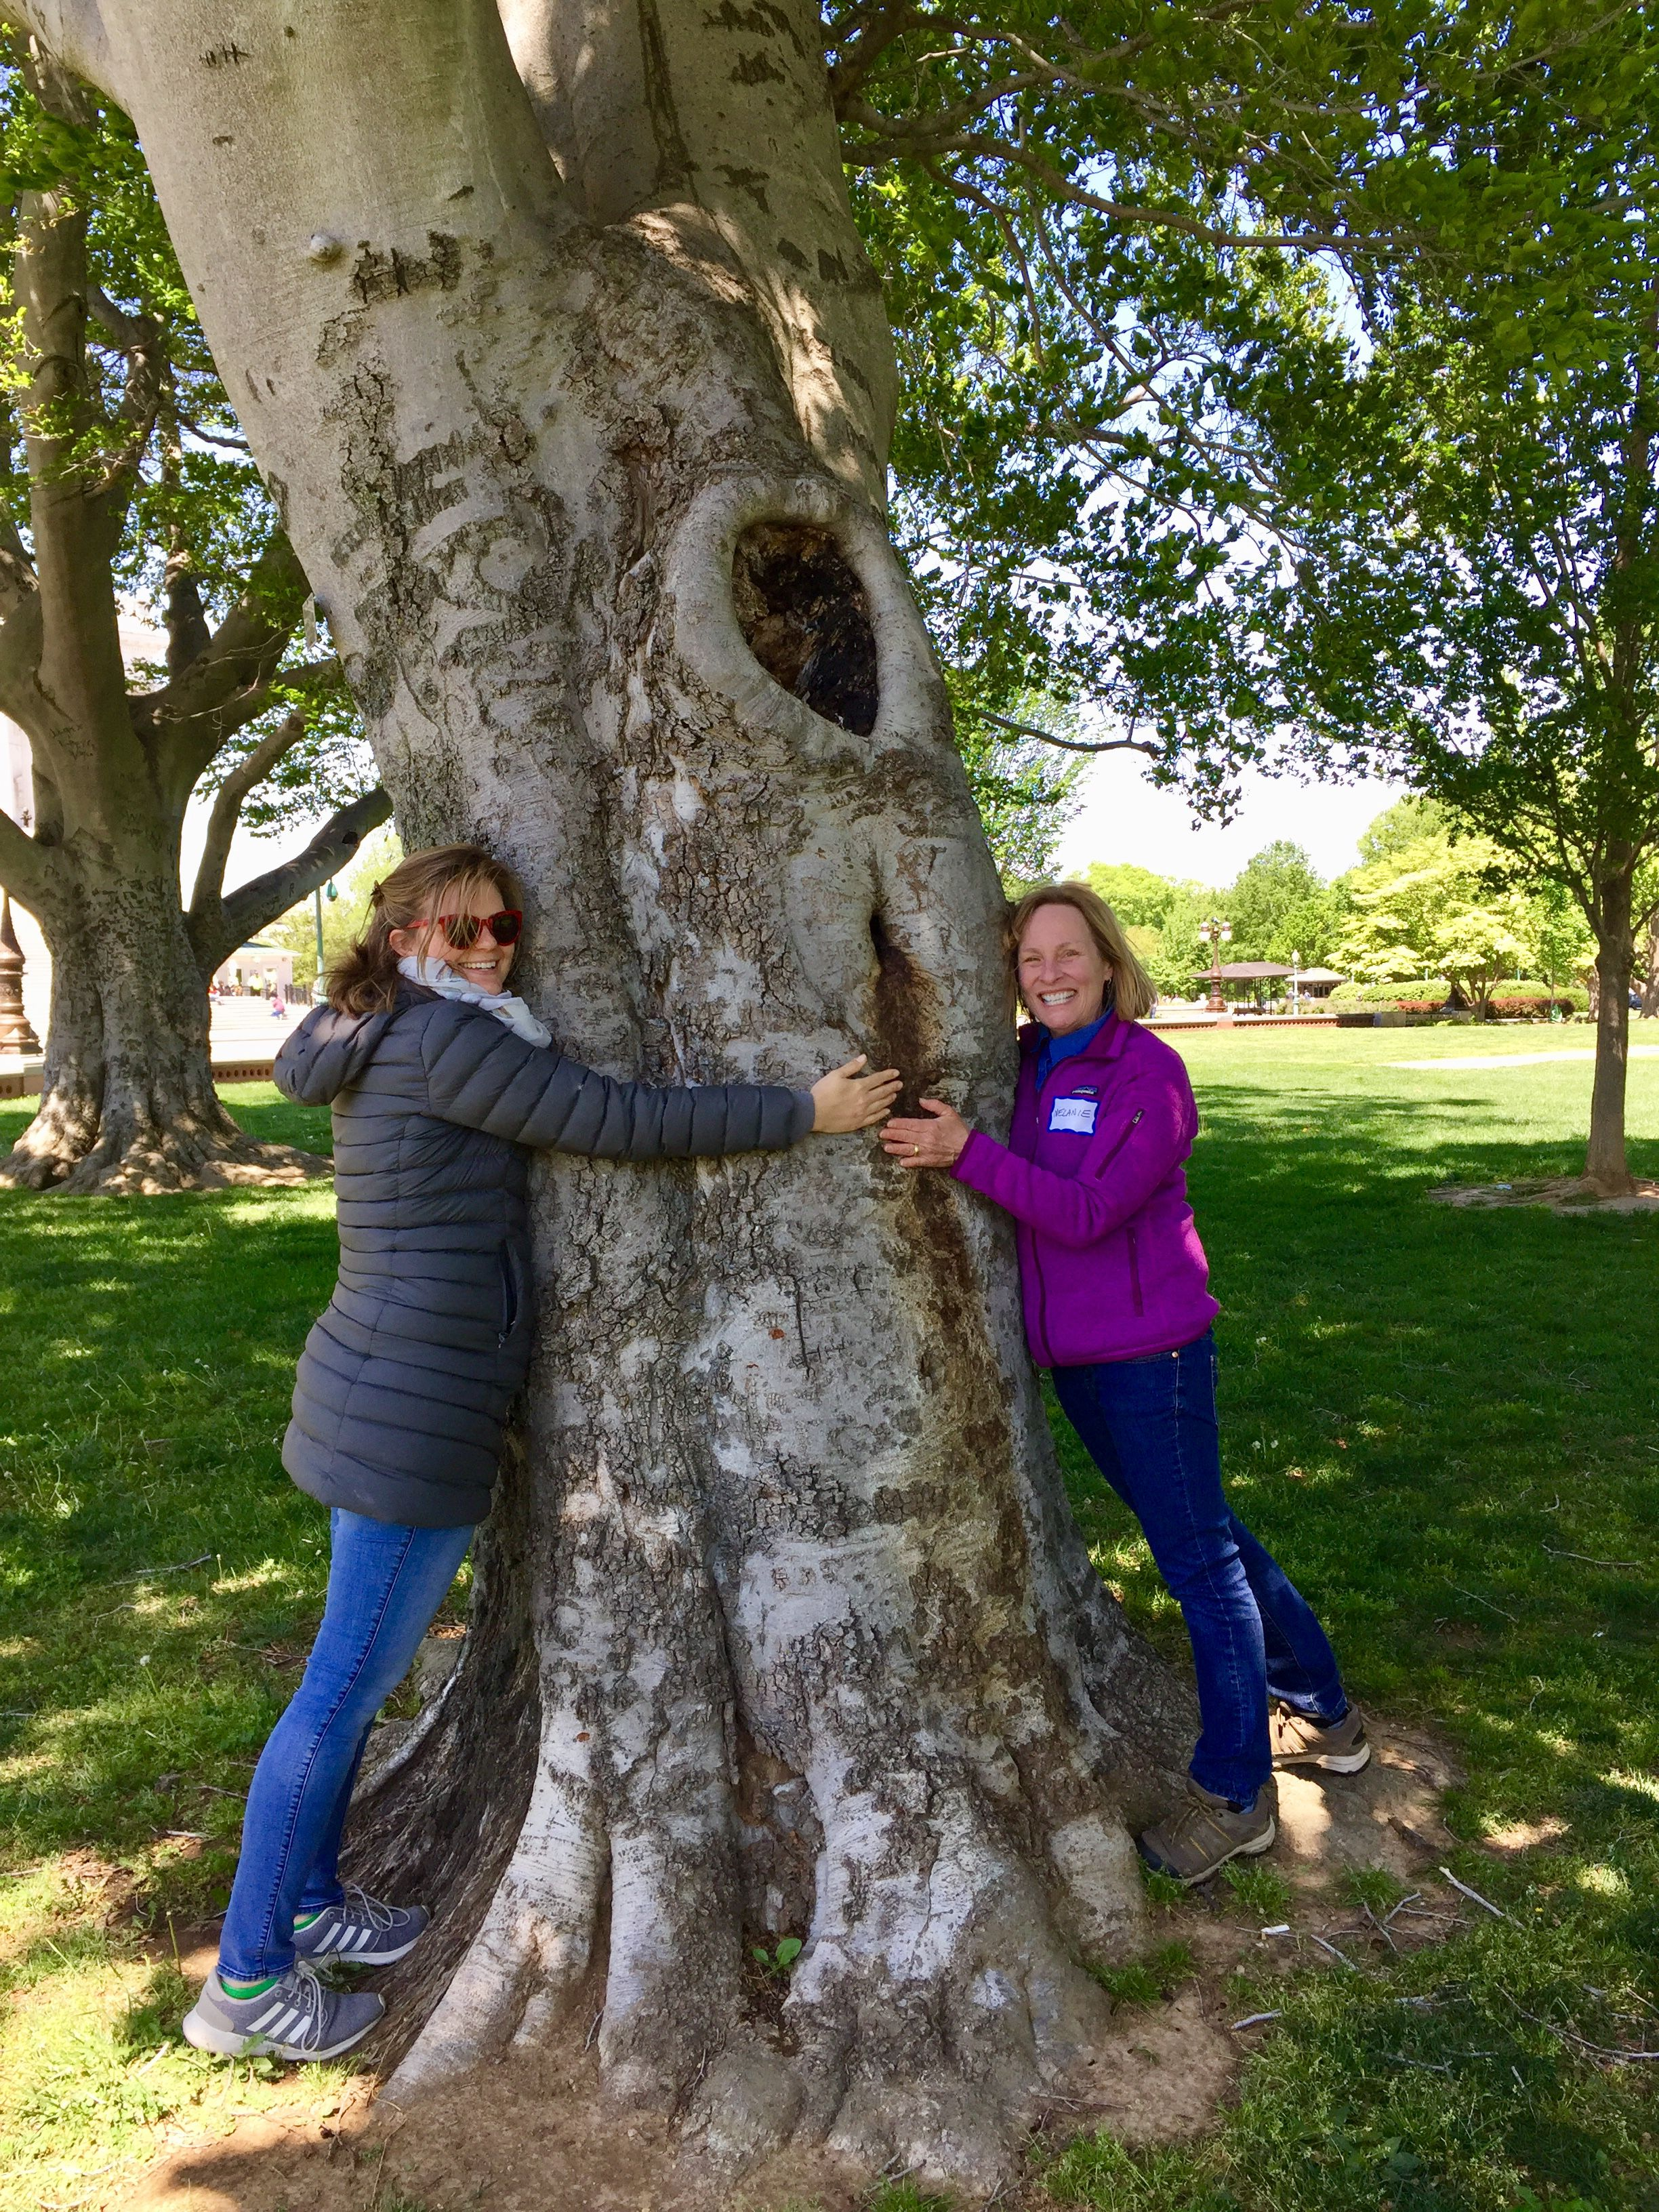 Two women stand on opposite sides of a large tree trunk, smiling and posing while hugging the tree.